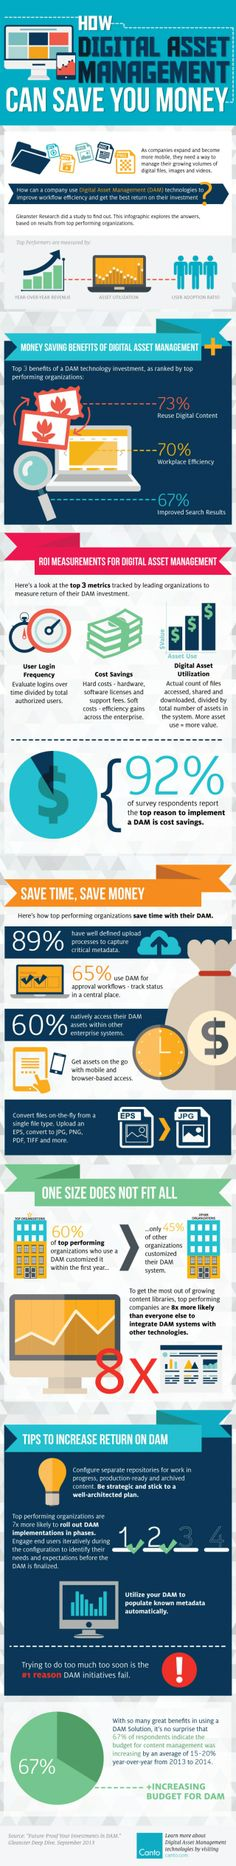 [Infographic] How Digital Asset Management Can Save You Money Digital Asset Management, What Is Digital, Save Your Money, Online Marketing, Canning, Infographics, Cases, Future, Business